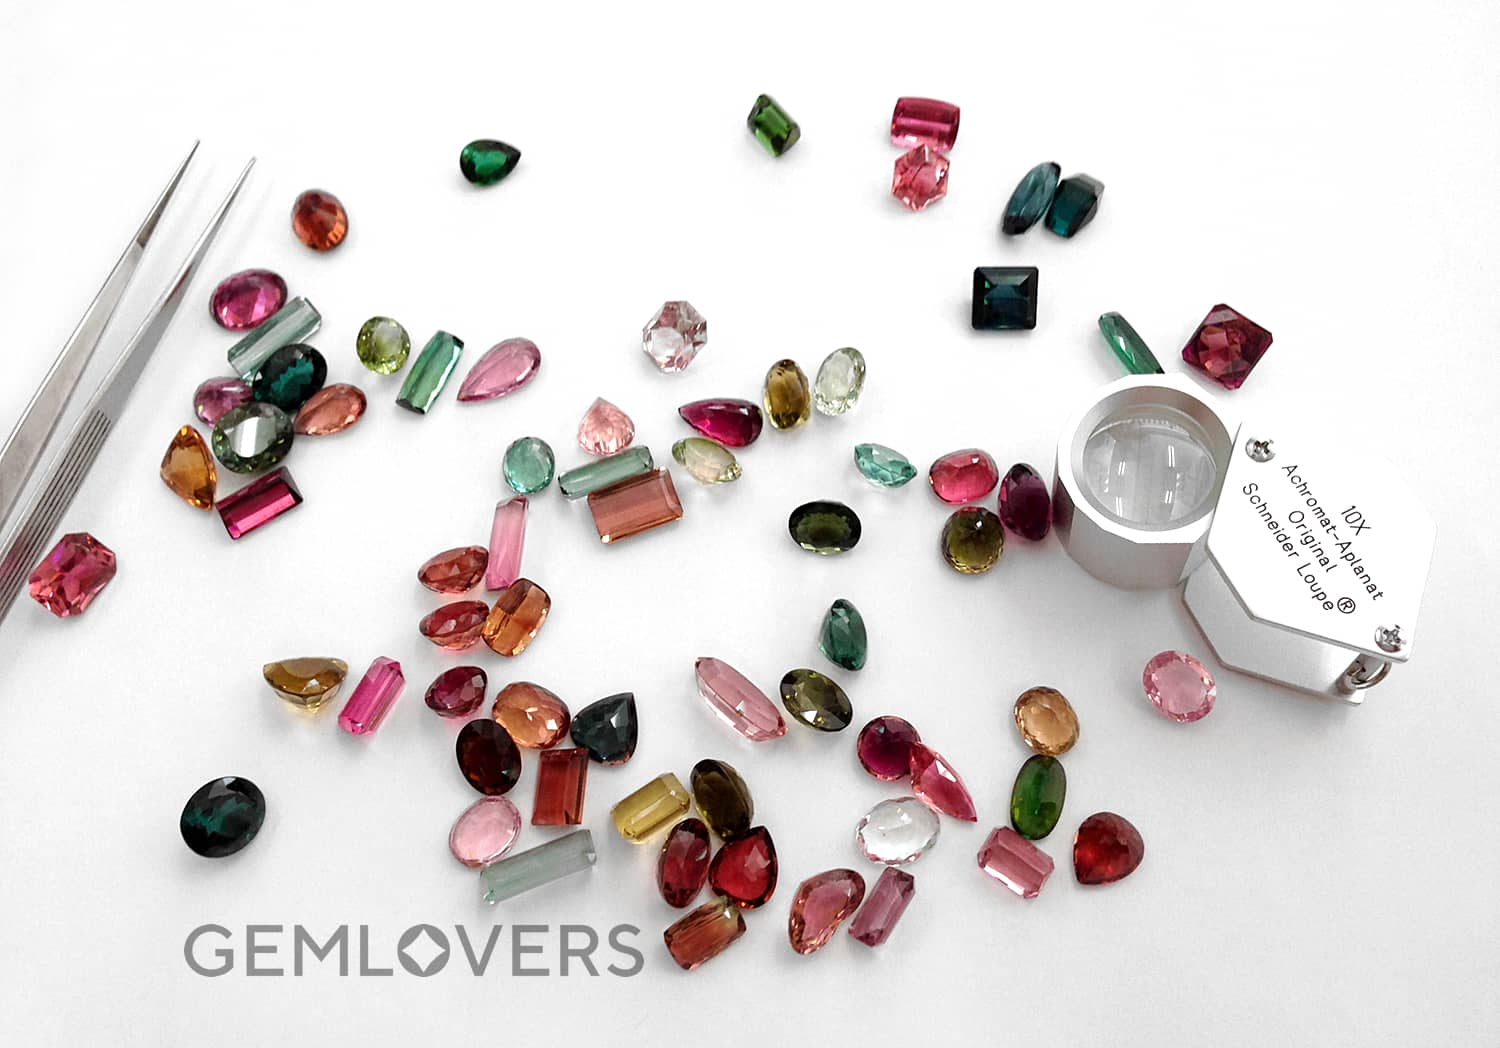 tourmaline of different facets and colors